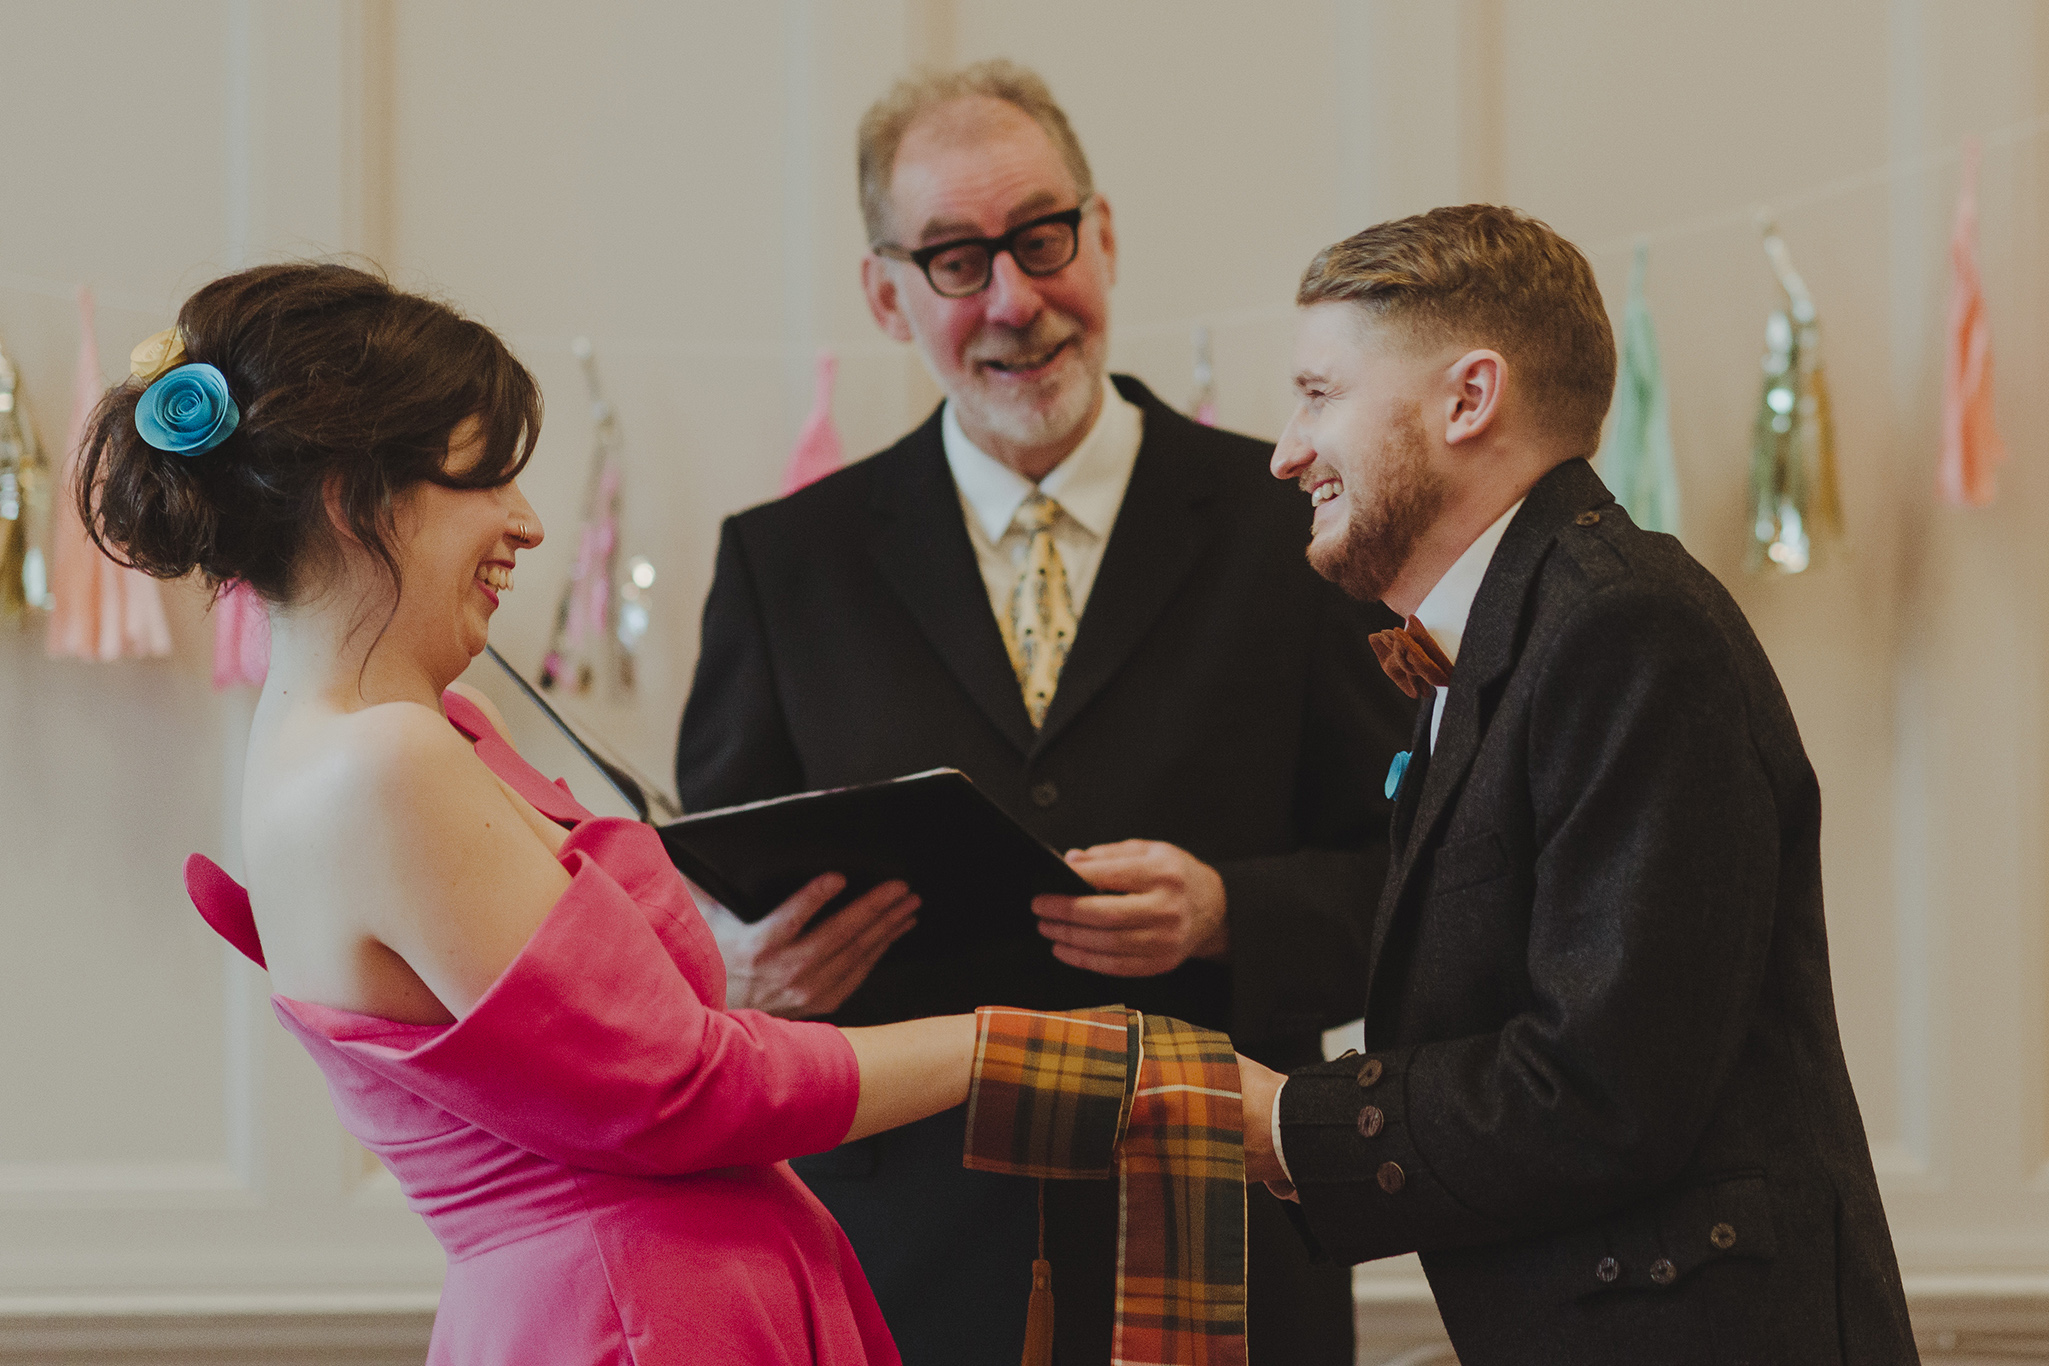 Summerhall and The Biscuit Factory Wedding 11.jpg